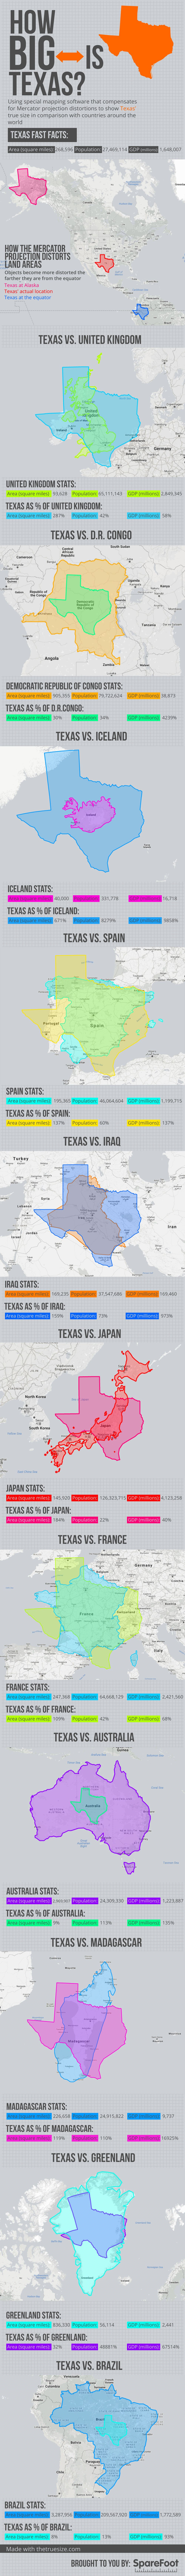 Which Corrects For Mercator Distortions To Create Maps Comparing Texas To Countries Around The World This Infographic Shows The Result